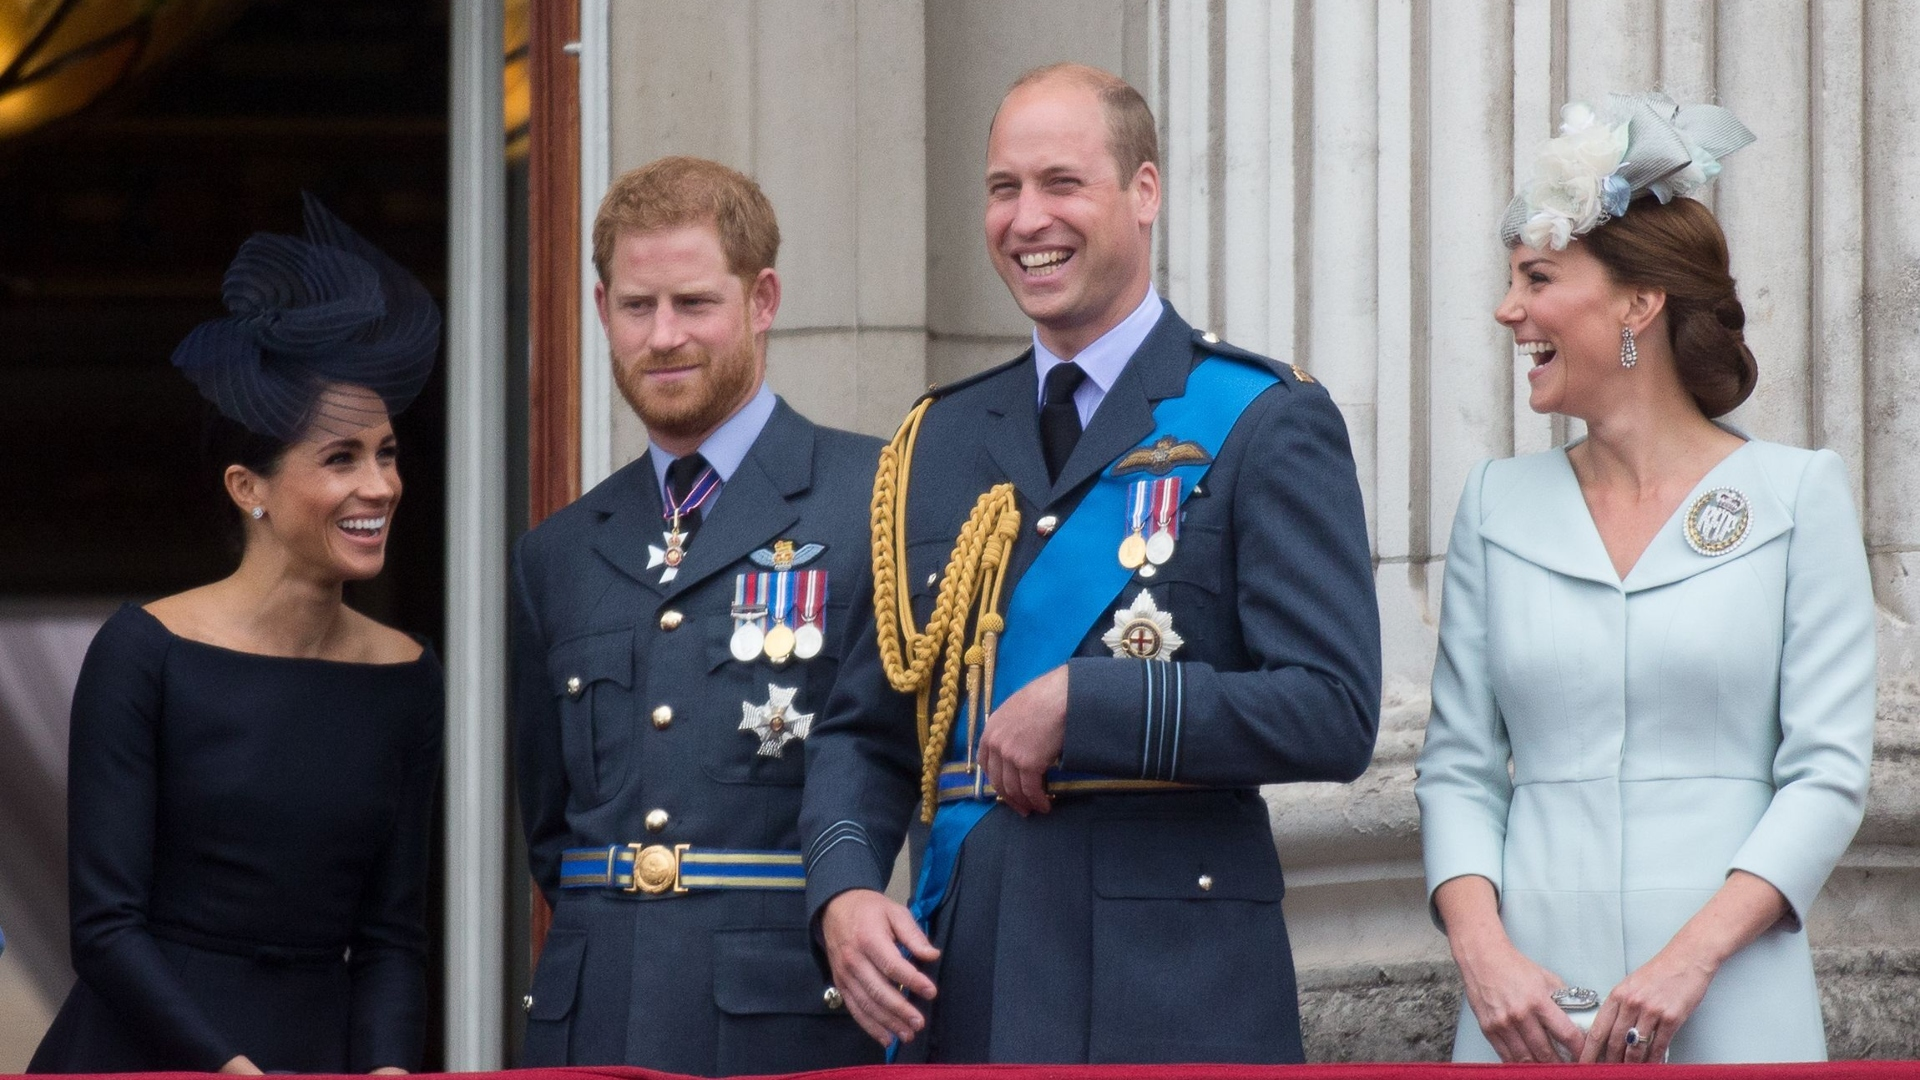 best royal family photos of the past 20 years sheknows best royal family photos of the past 20